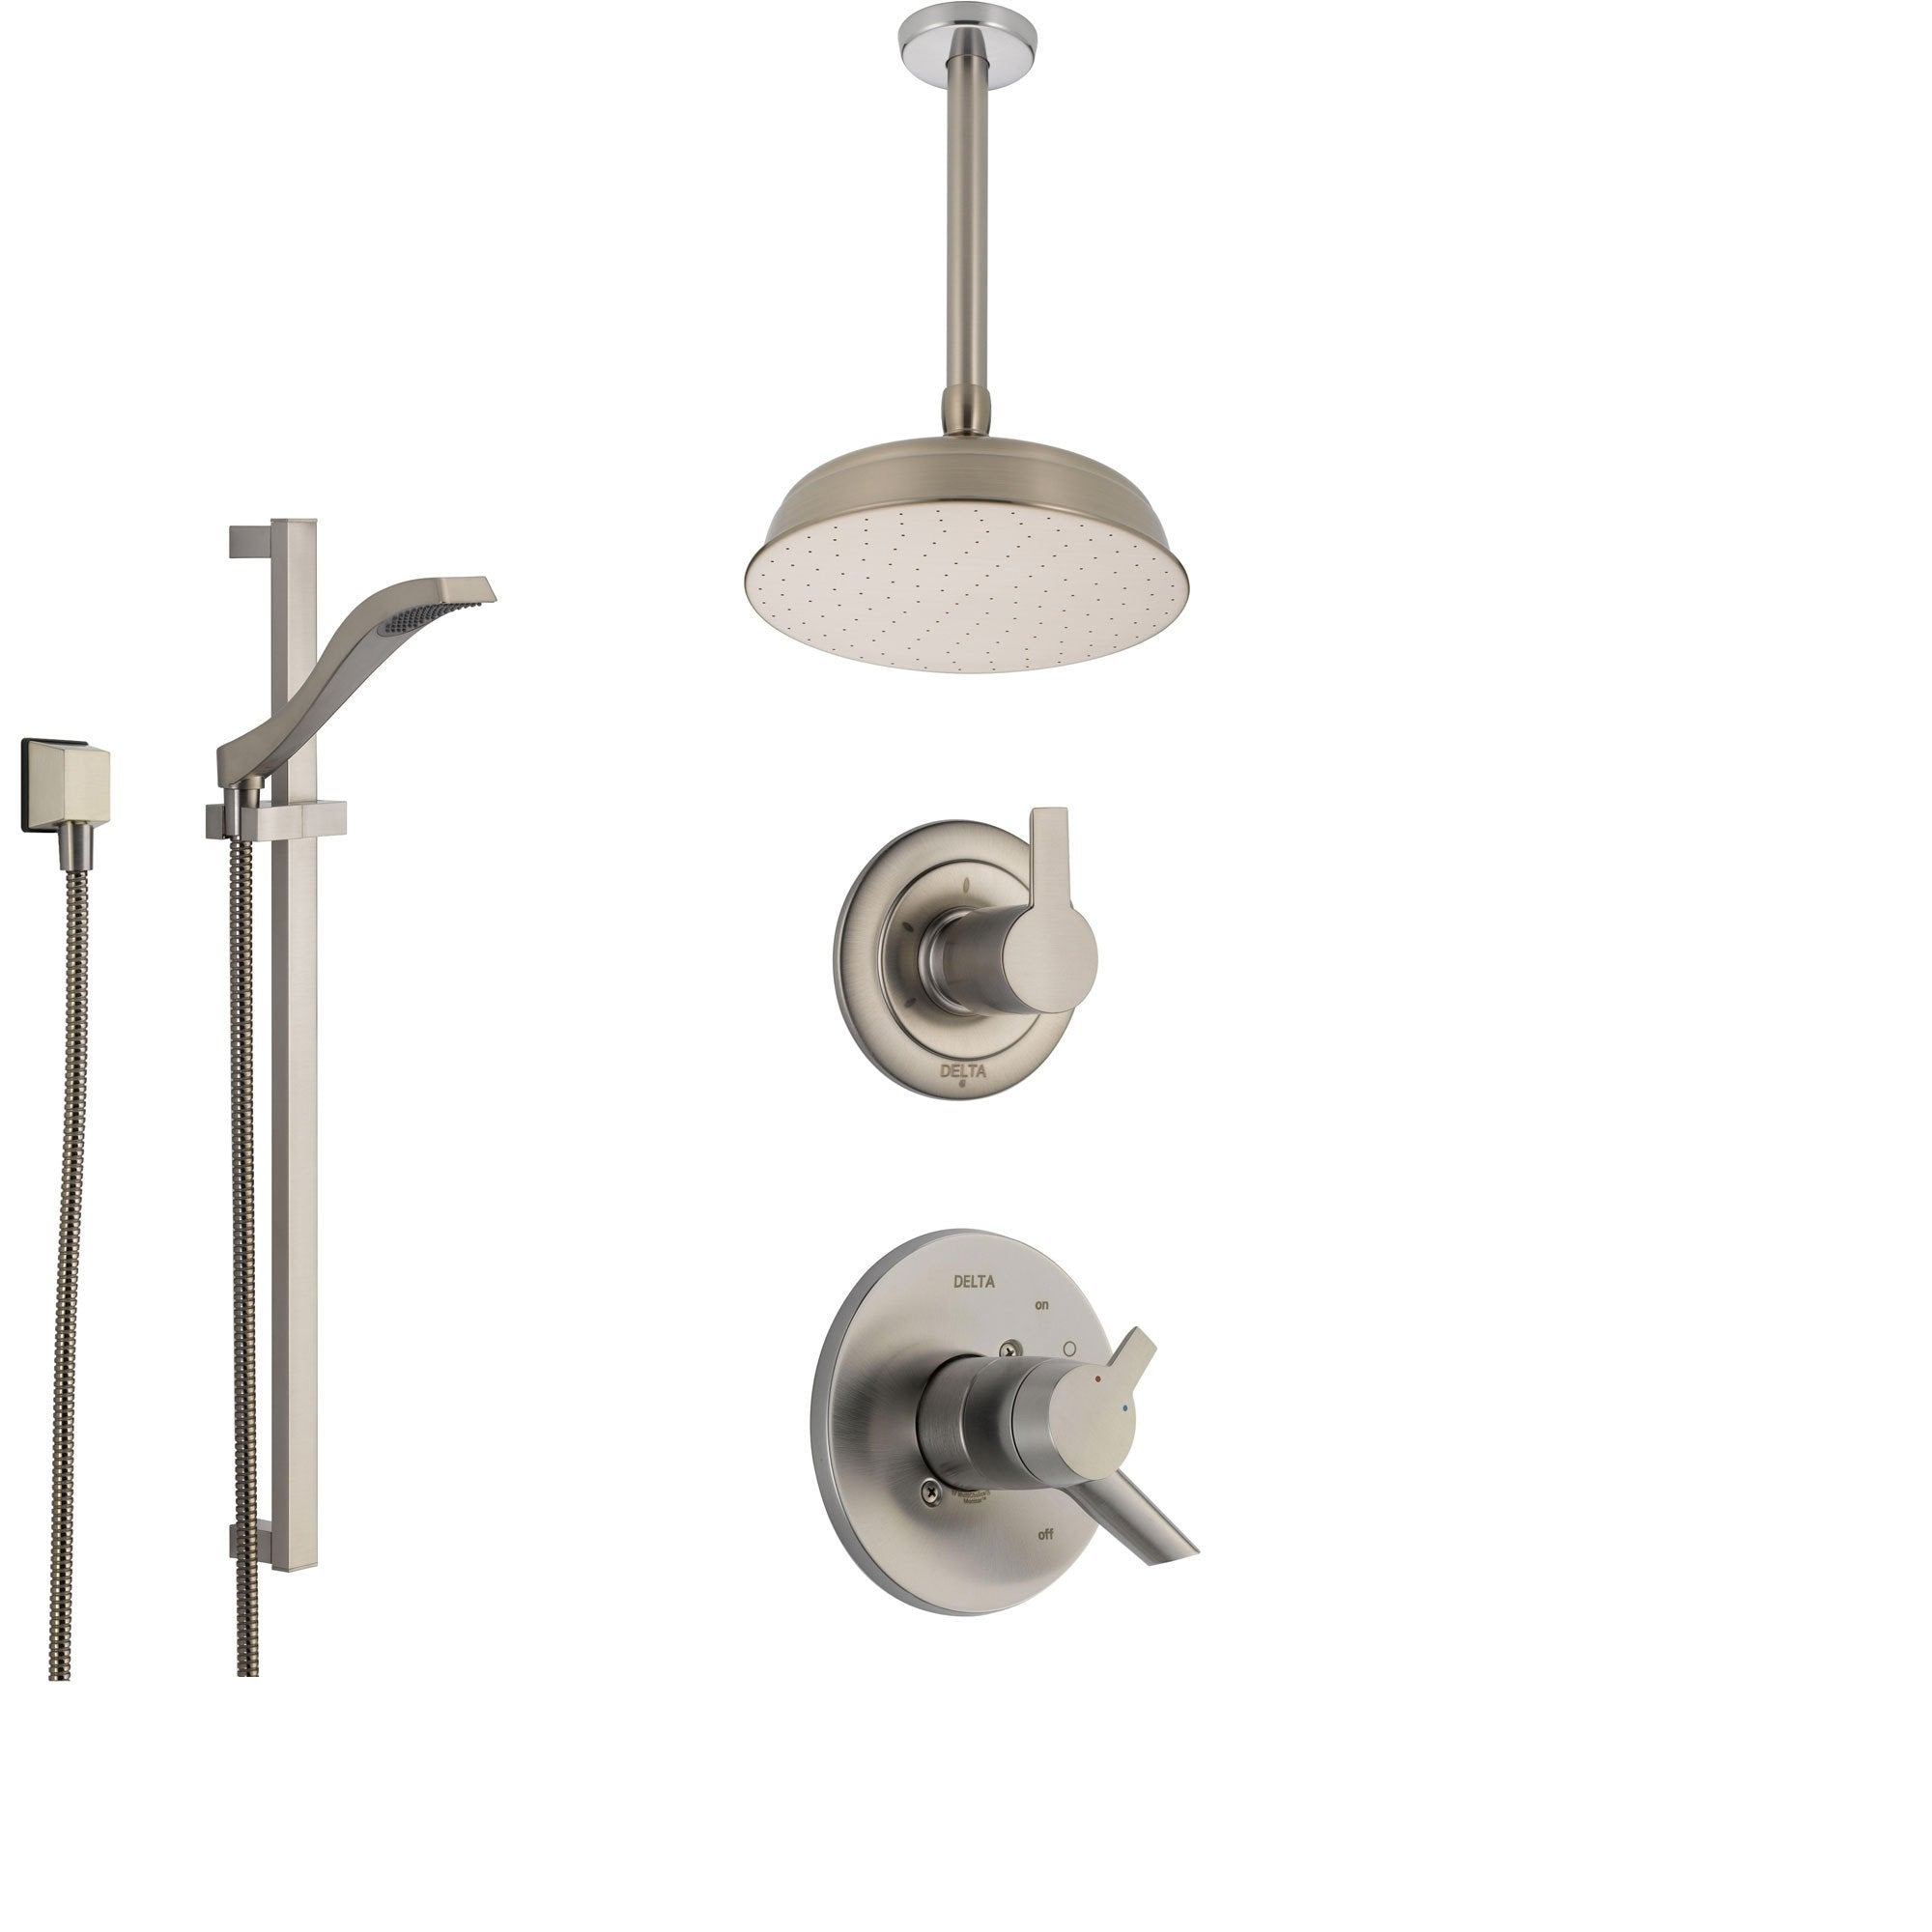 Delta Compel Stainless Steel Shower System with Dual Control Shower Handle, 3-setting Diverter, Large Round Ceiling Mount Showerhead, and Handheld Shower Spray SS176181SS